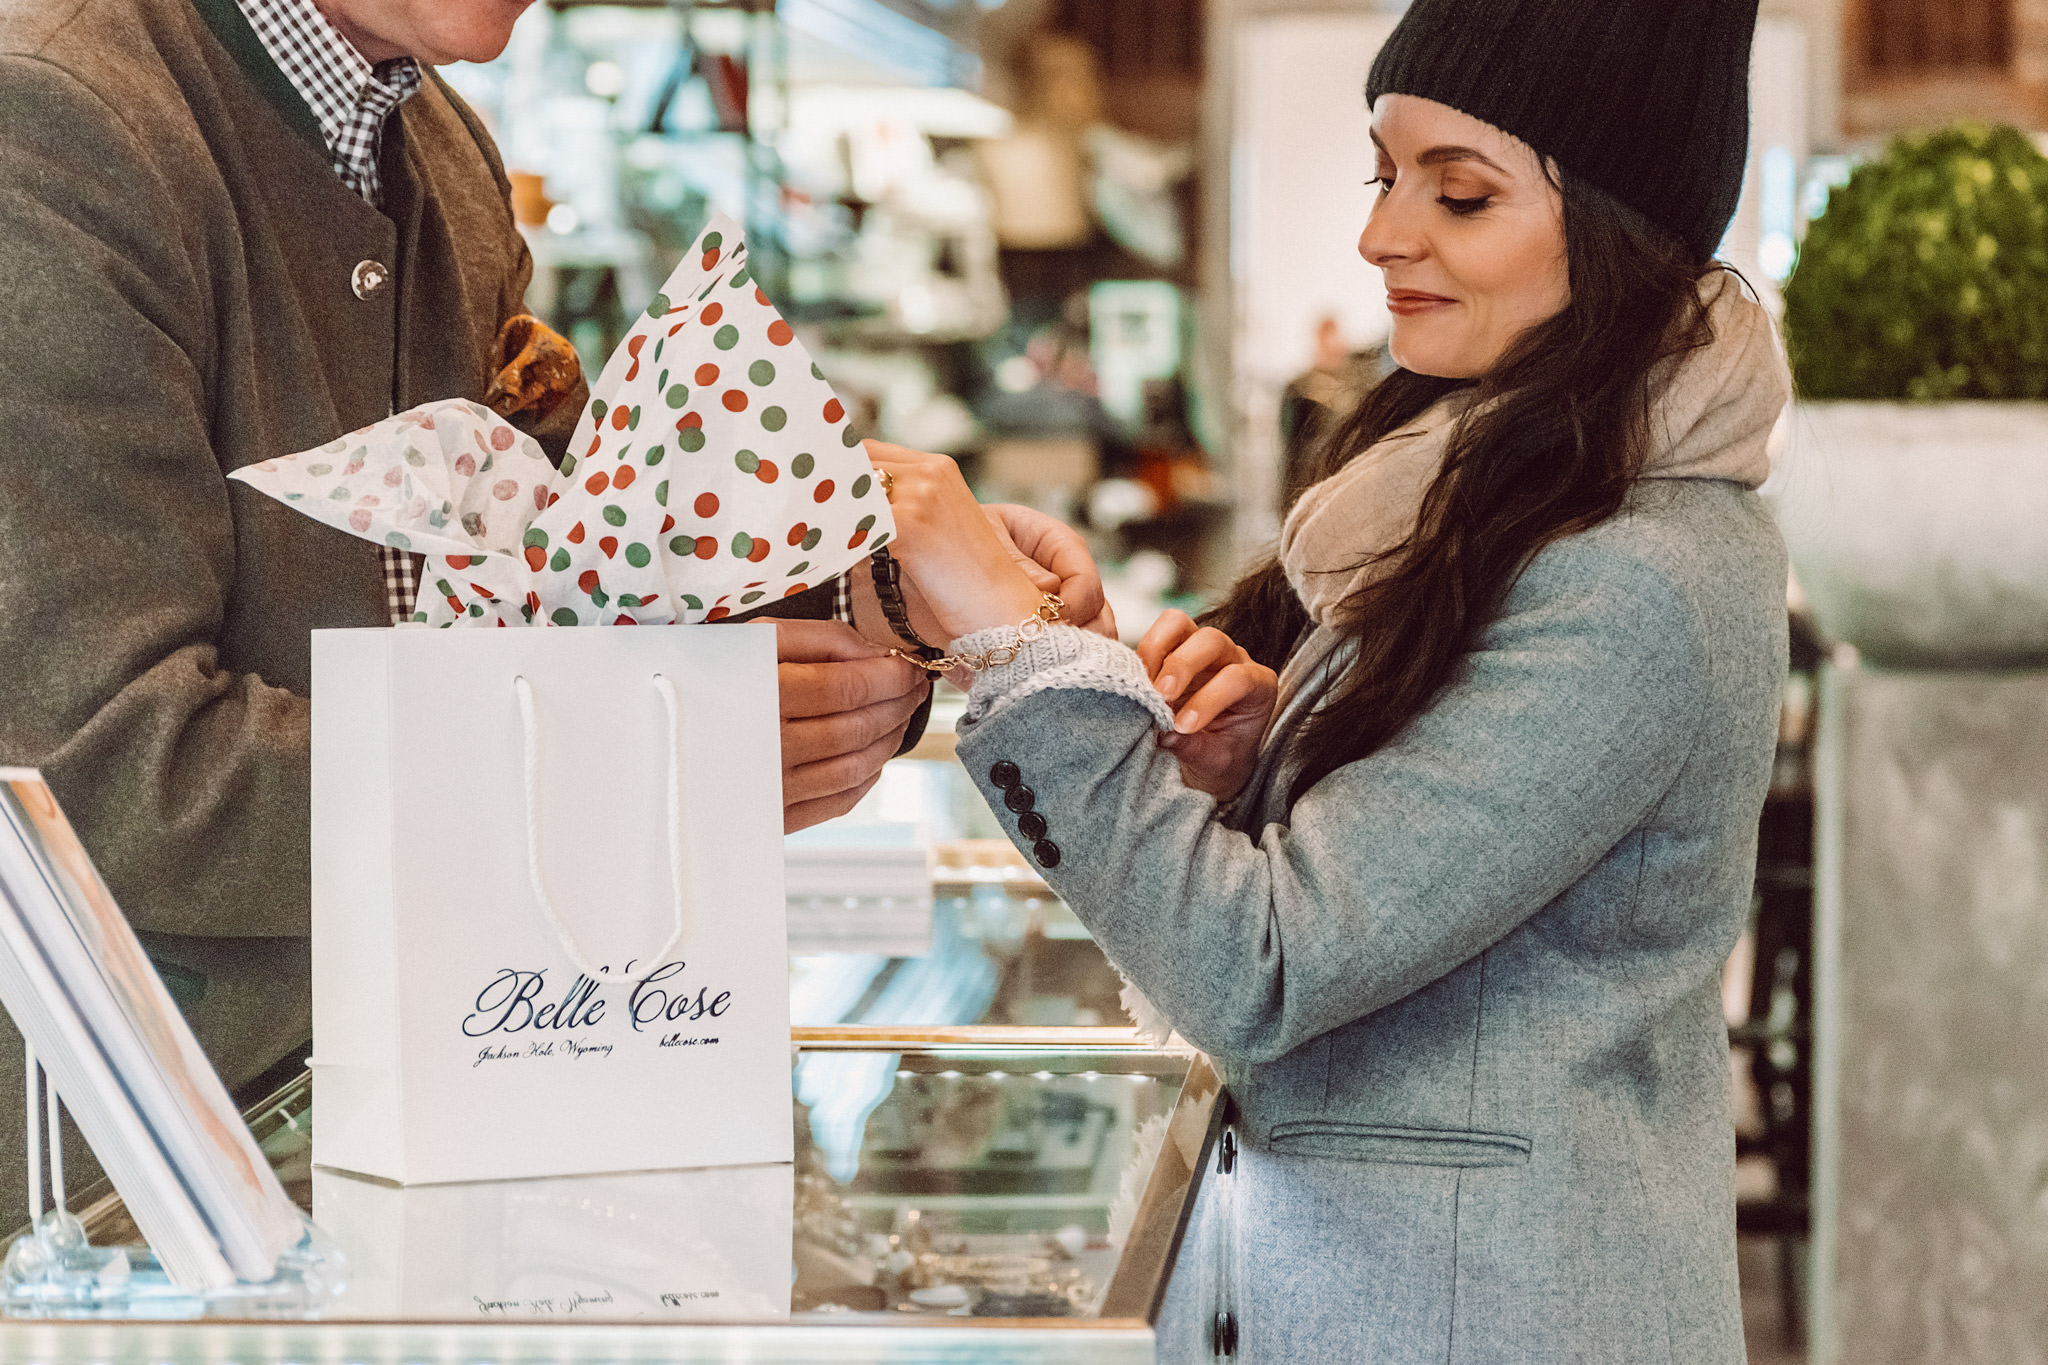 Belle Cose Jewelry Store Woman Boutique Jackson Hole Wyoming WY Shopping